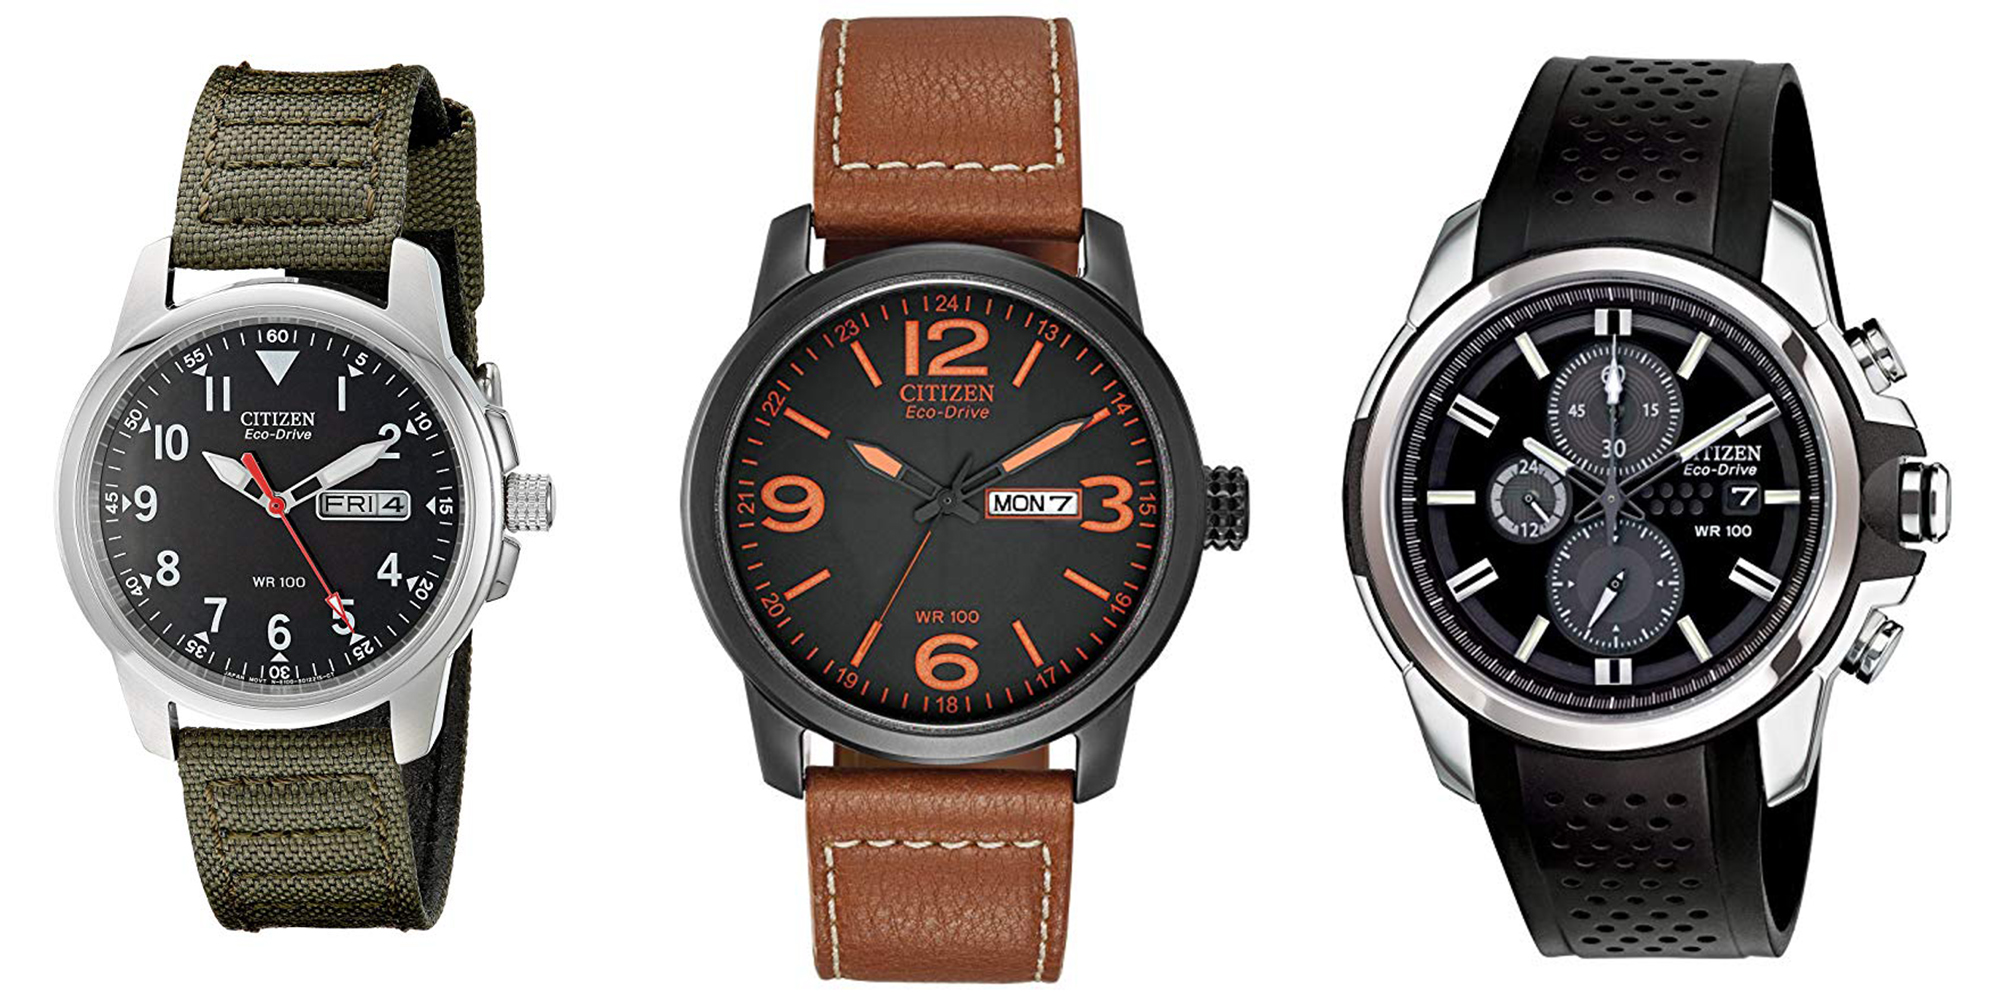 Top-rated Citizen Watches are on sale from $60 at Amazon, today only